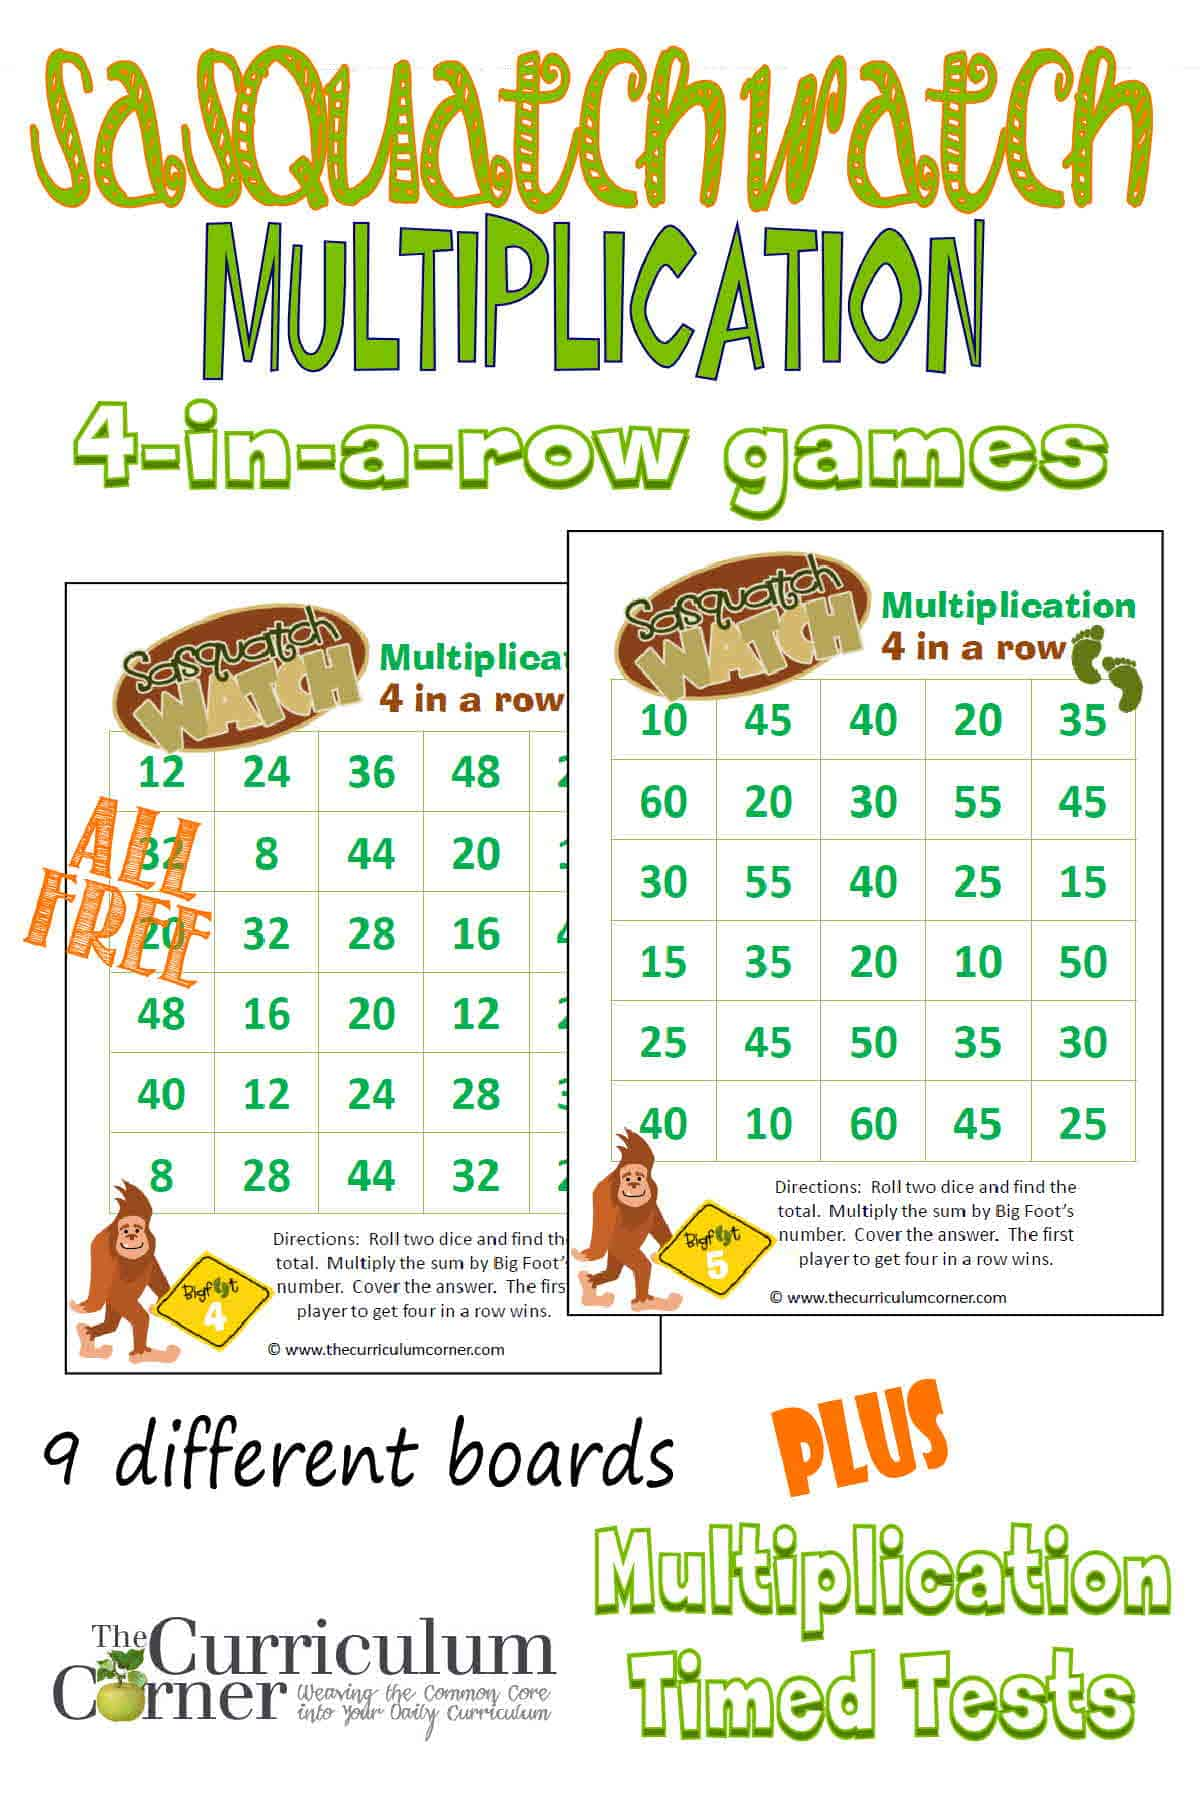 Strategies to Help Students Master Multiplication Facts - The ...